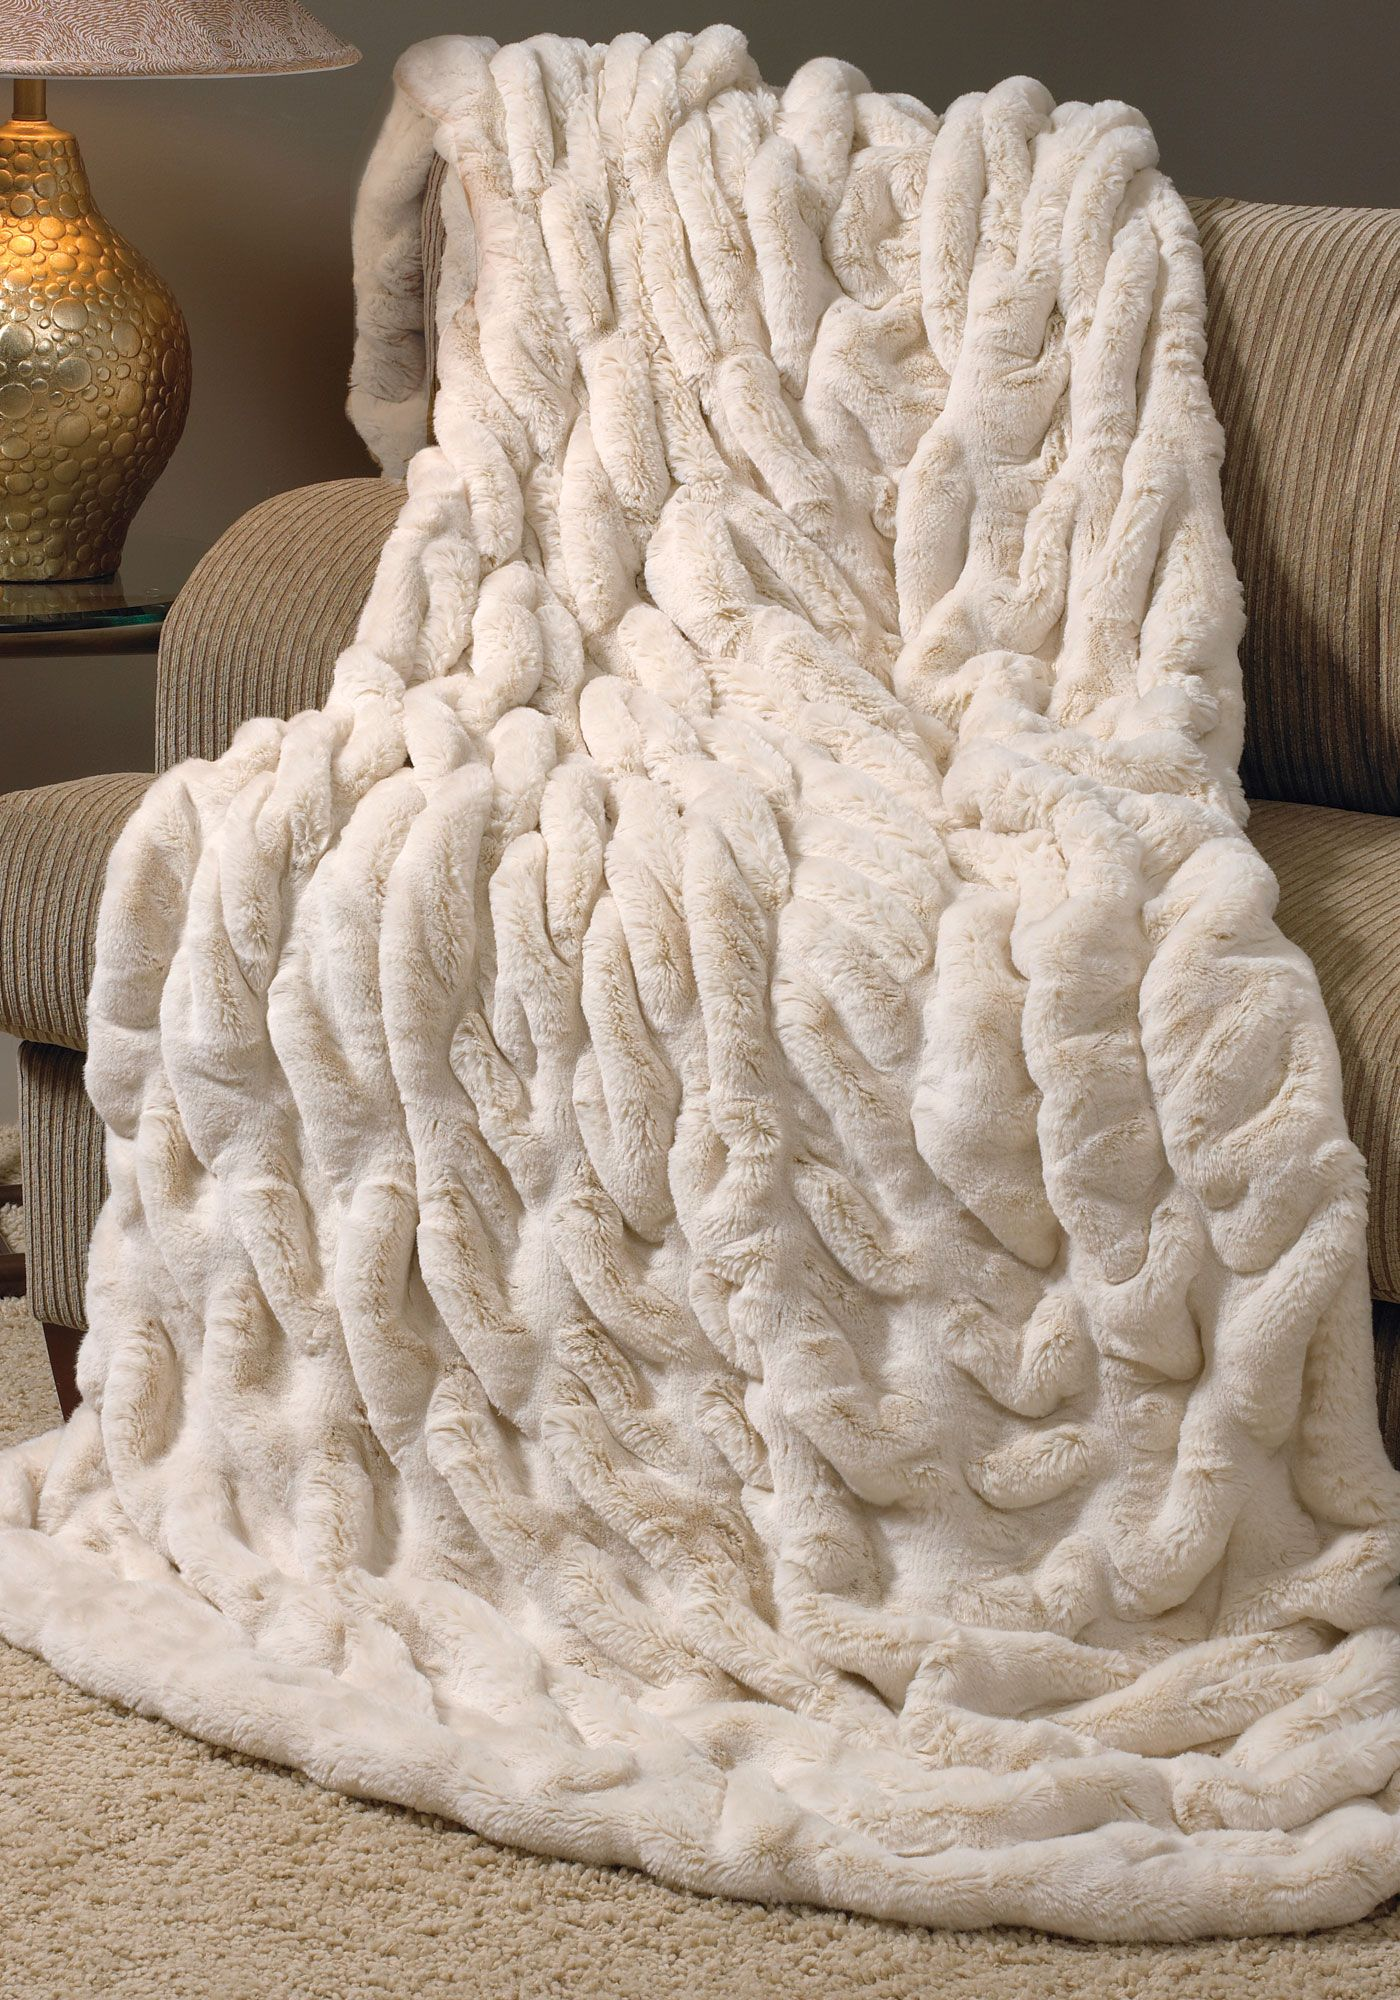 Ivory Mink Faux Fur Couture Throw Blankets Discover Home Design Ideas Furniture Browse Photos And Plan Projects At Hg Connecting